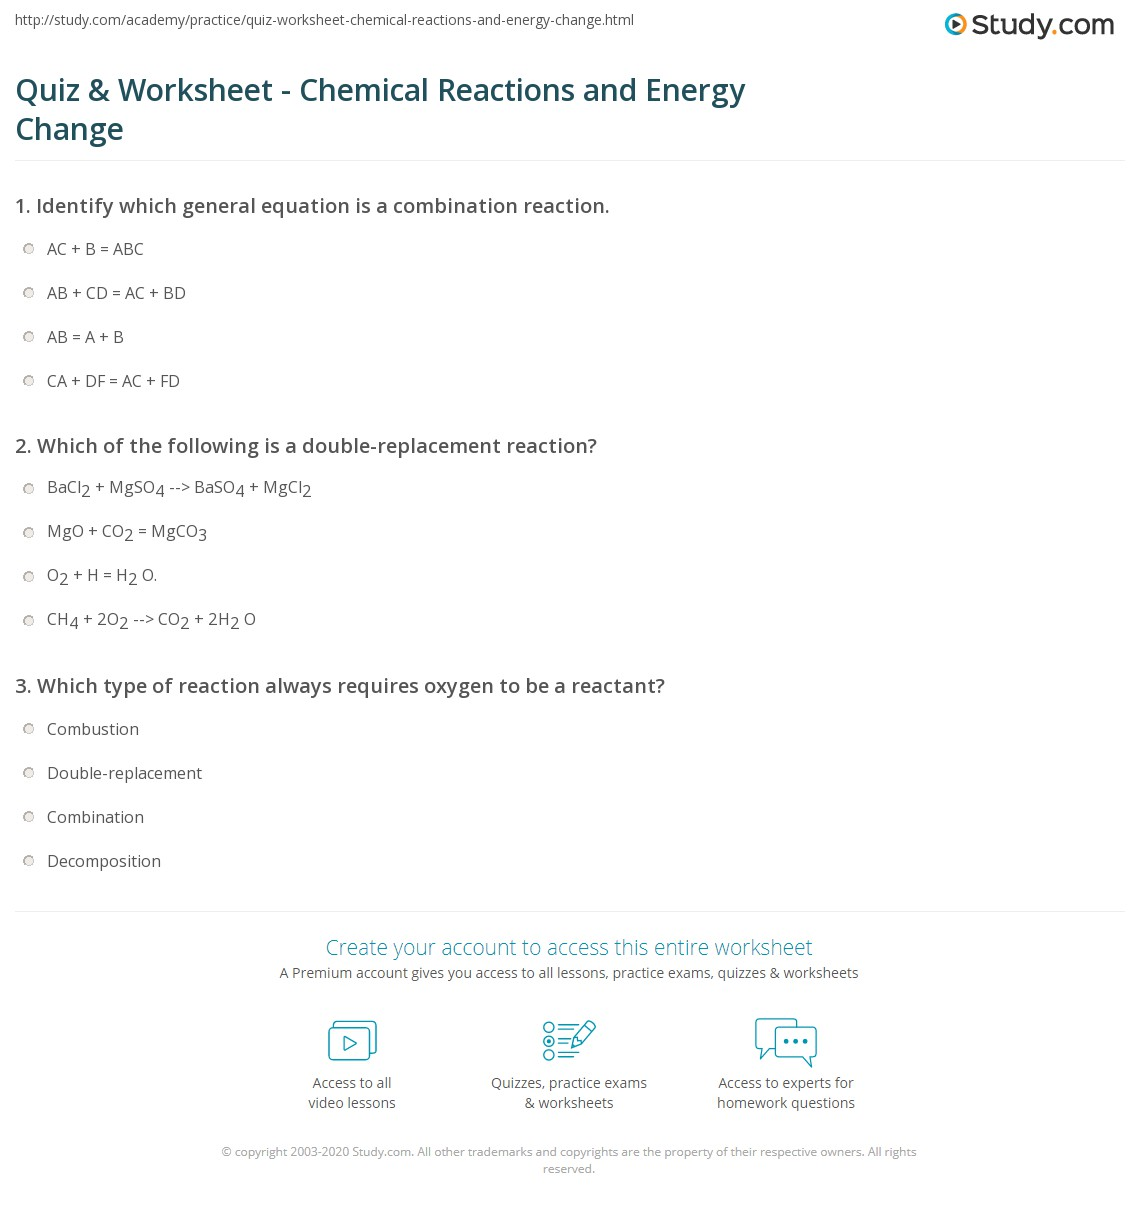 Quiz & Worksheet - Chemical Reactions and Energy Change | Study.com